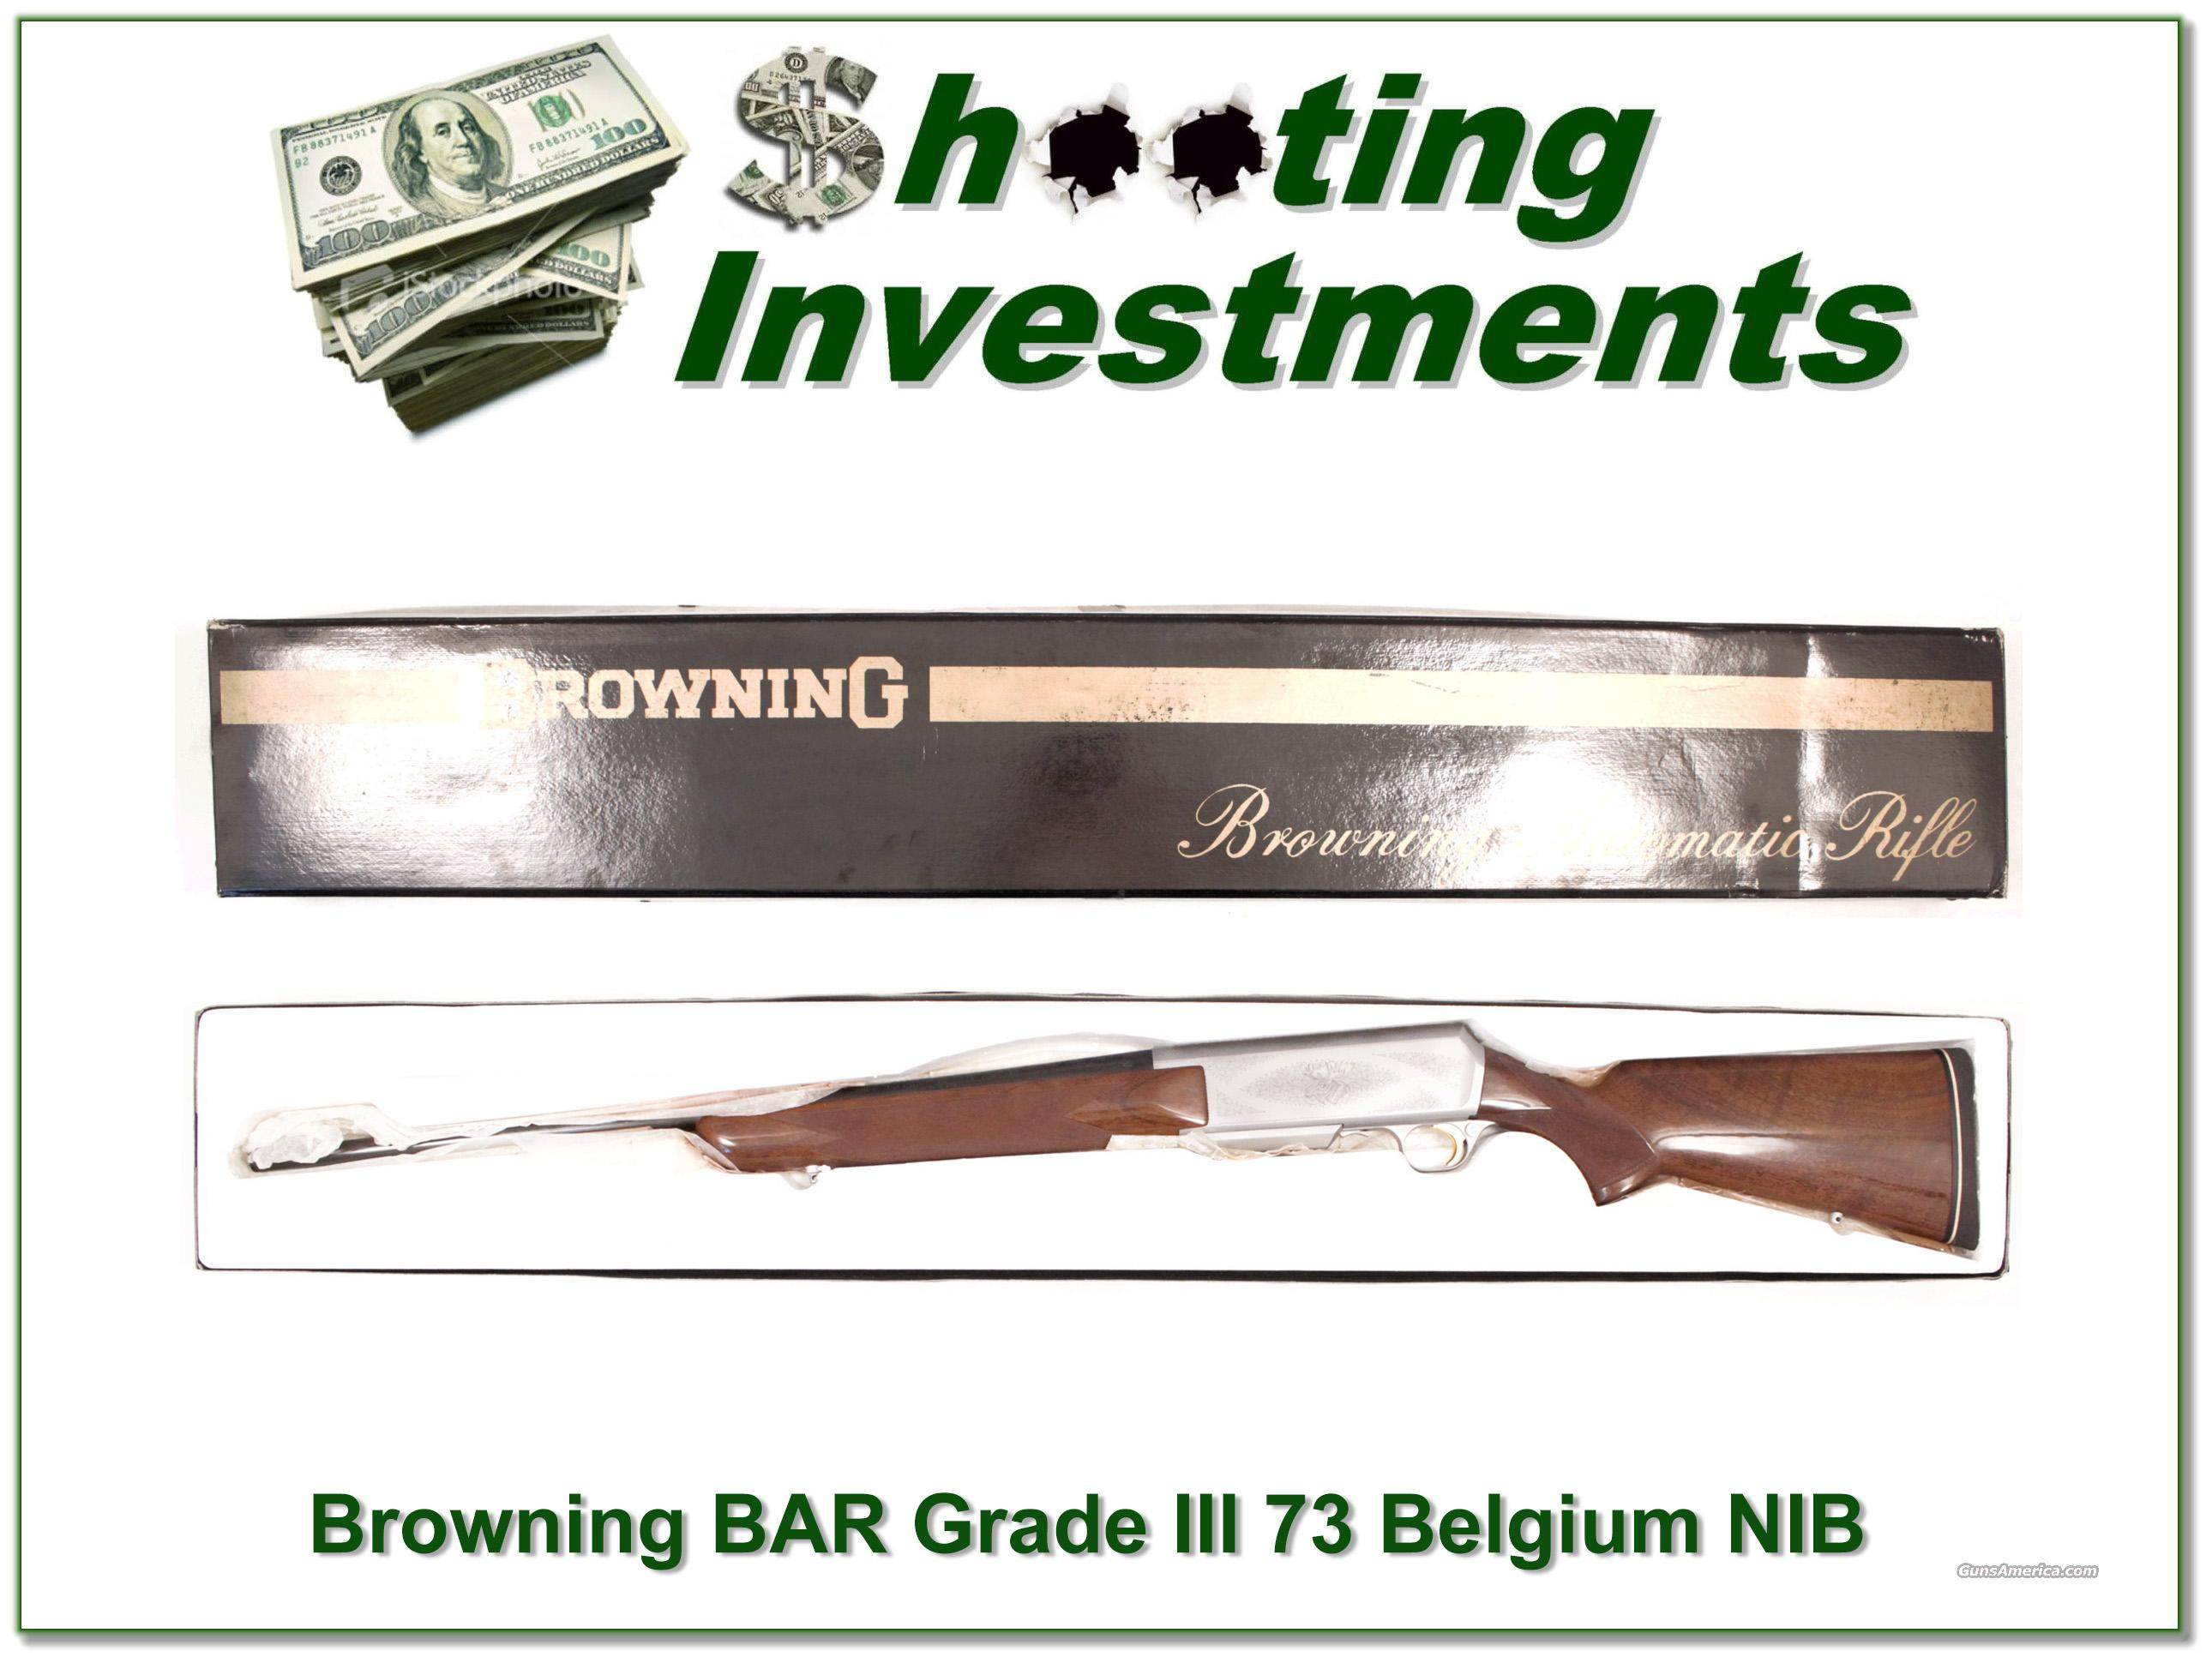 Browning BAR 300 73 Belgium rare Grade III NIB  Guns > Rifles > Browning Rifles > Semi Auto > Hunting